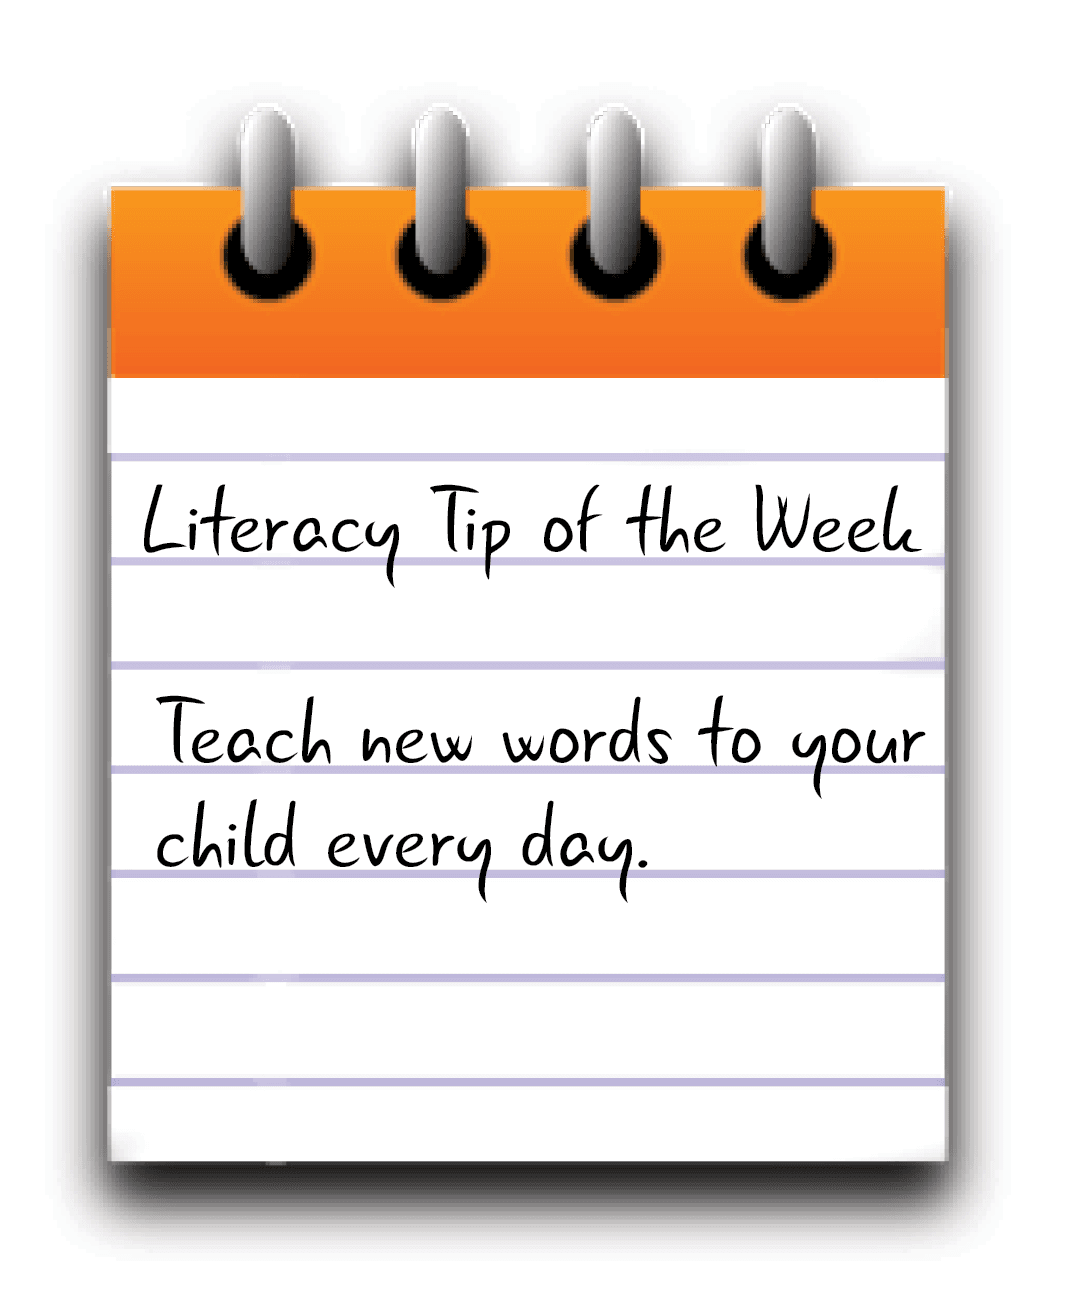 LiteracyTips-Week2-2